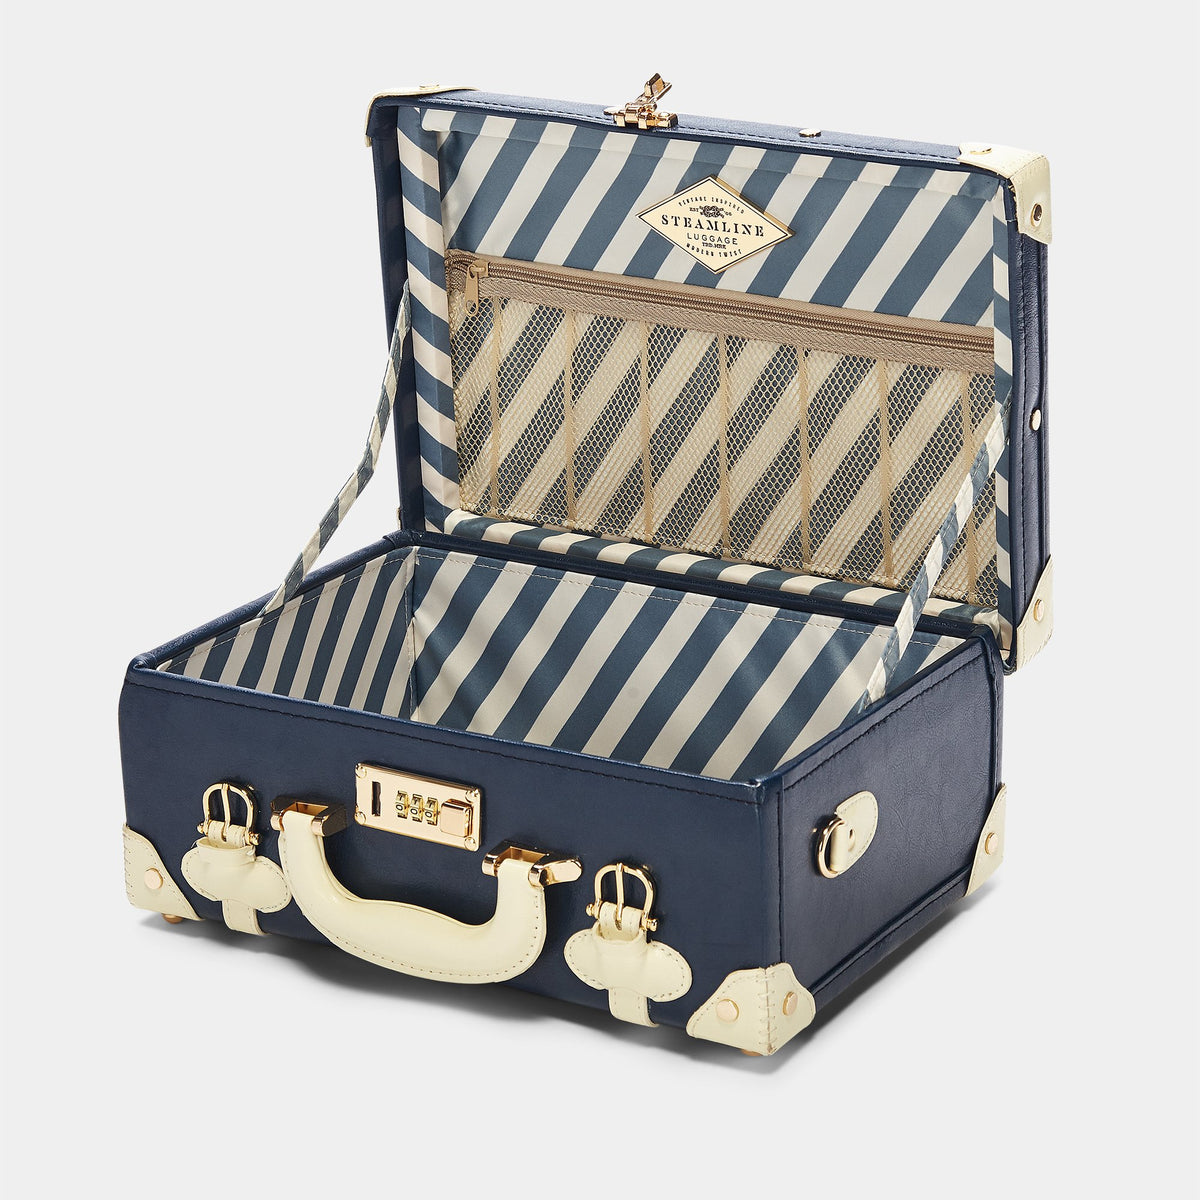 The Entrepreneur Briefcase in Navy - Vintage-Inspired Luggage - Interior Front